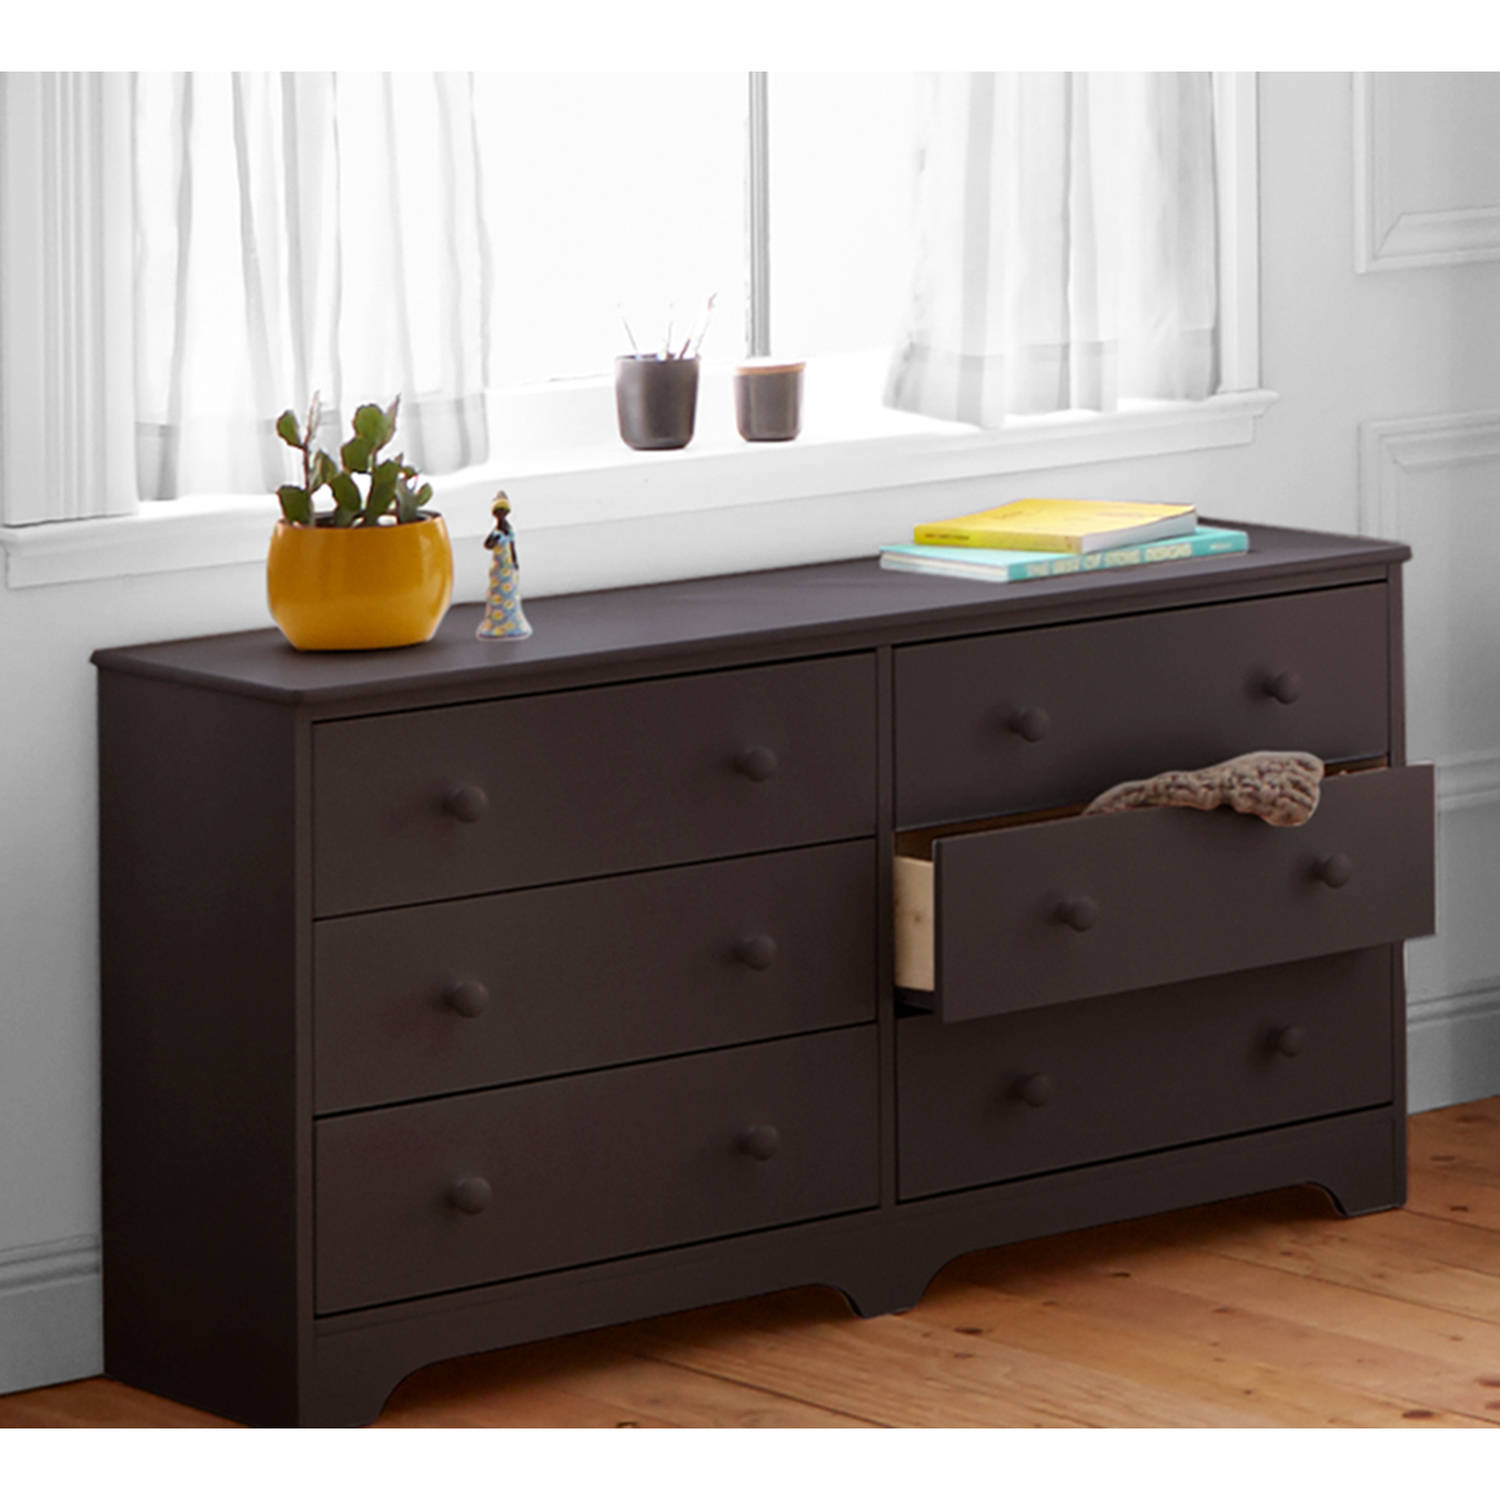 willey contemporary dressers classic rcwilley store chest view bedroom of jsp diego drawers furniture brown dresser rc espresso